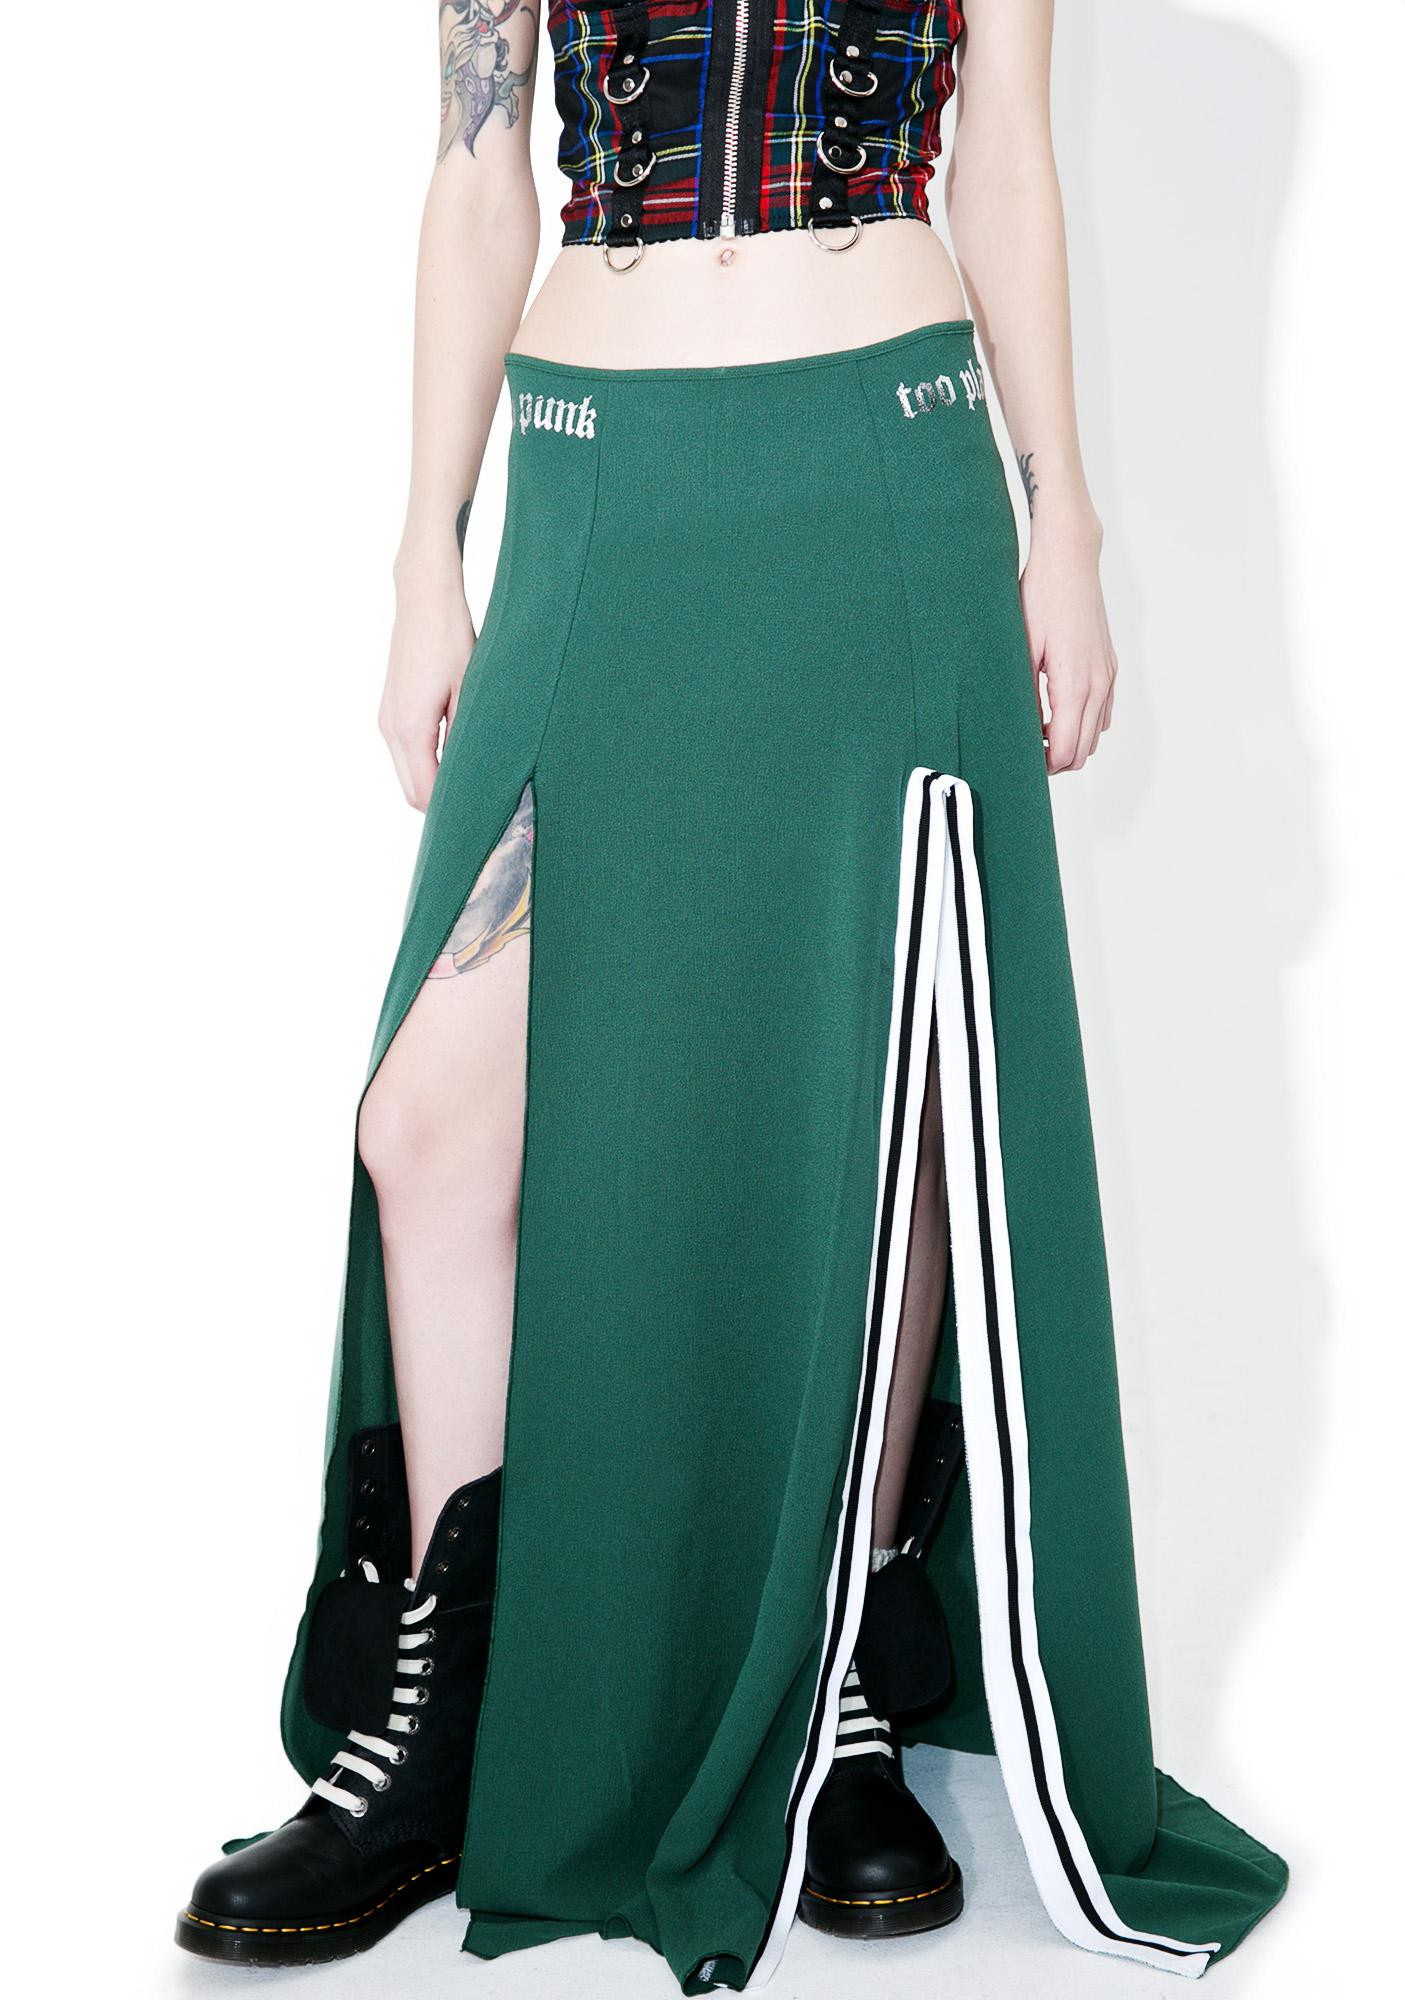 Happiness Too Punk To Play Maxi Skirt